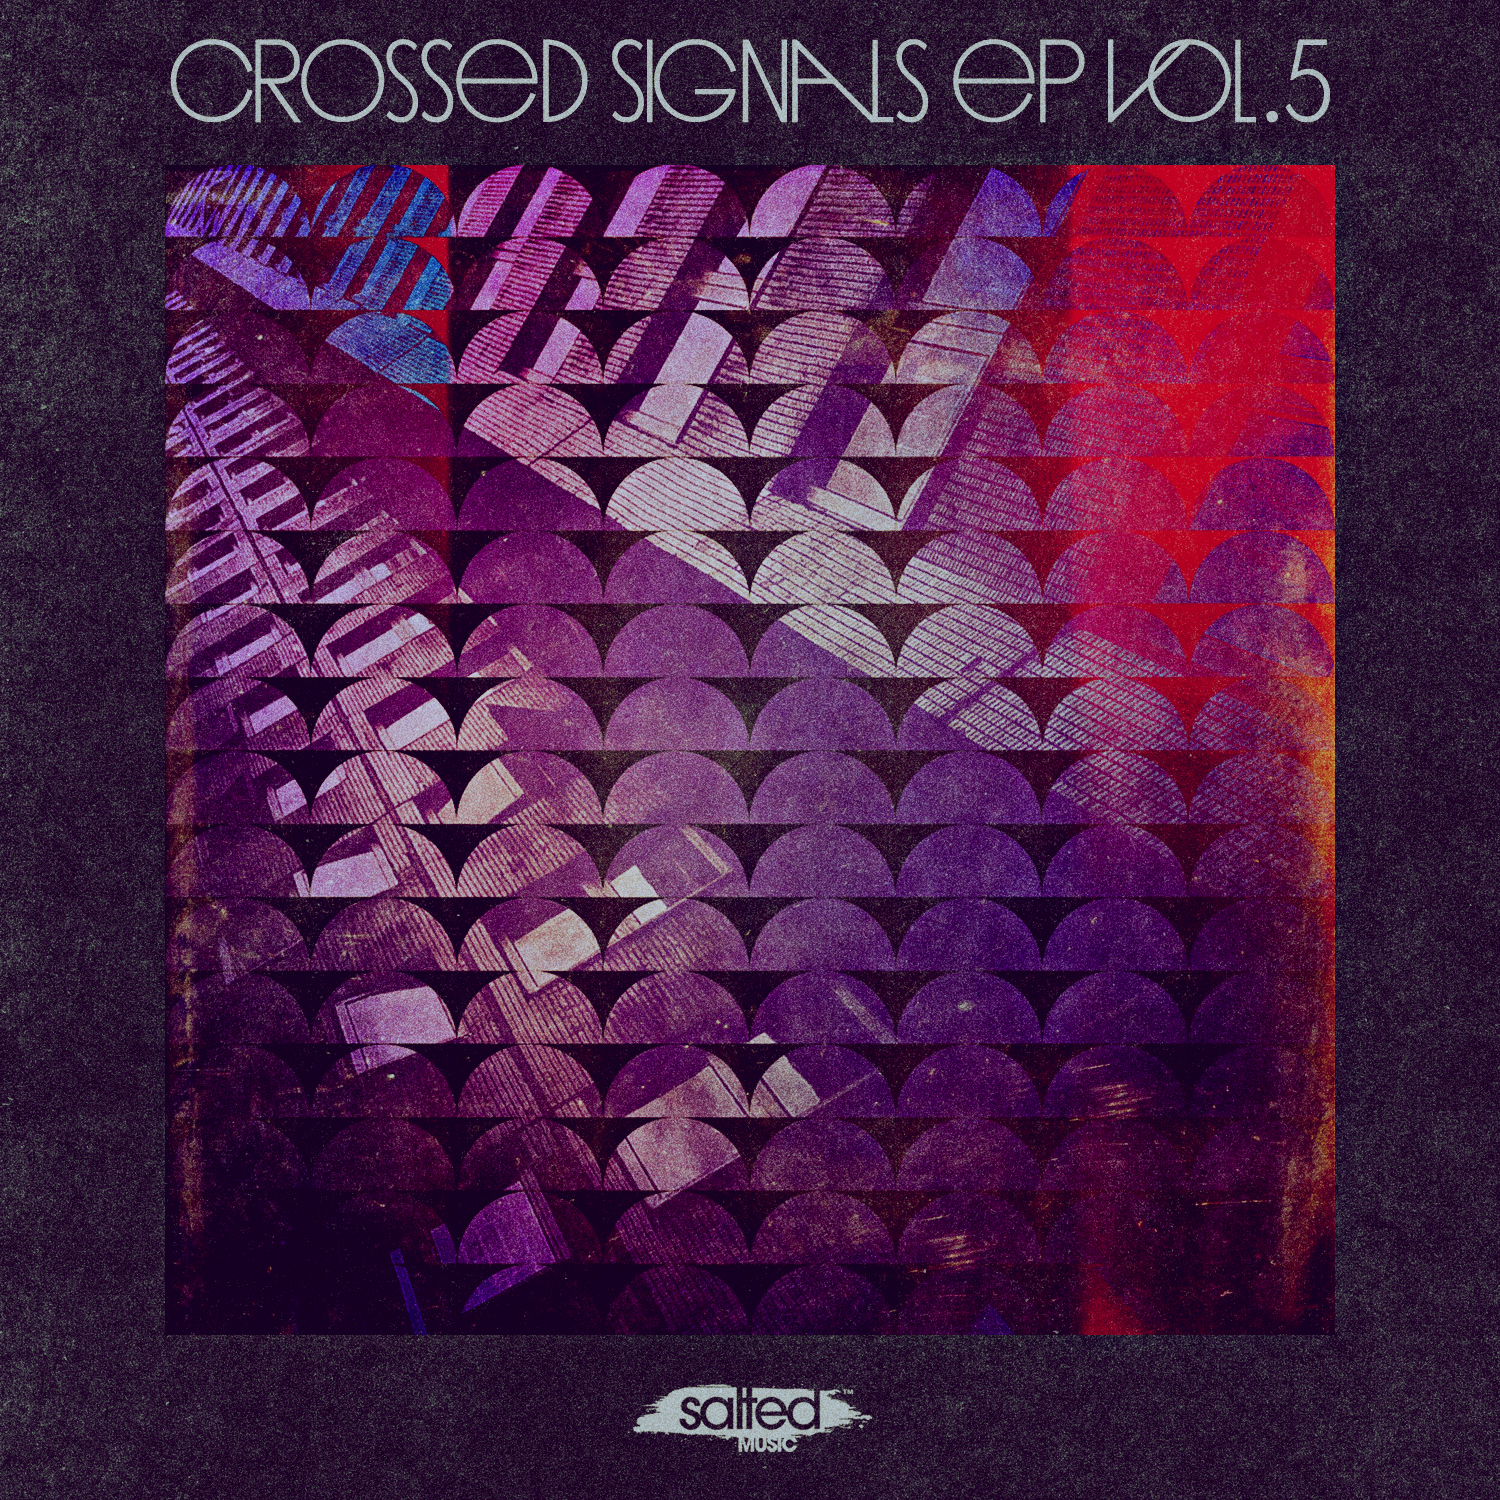 SLT137: Crossed Signals EP Vol. 5 (Salted Music)